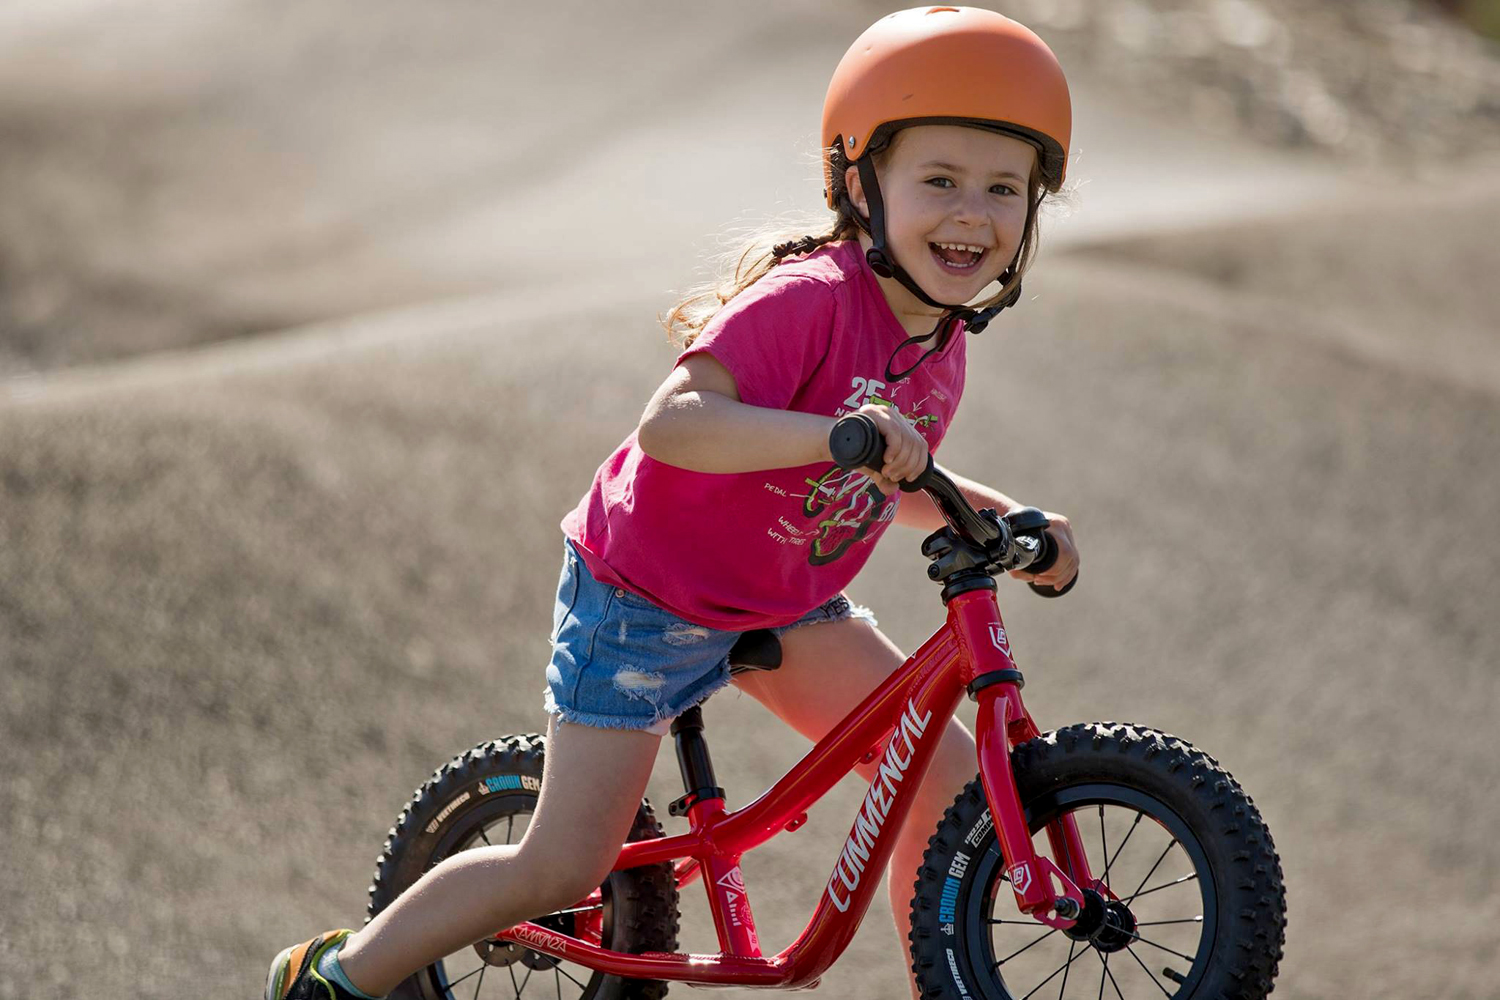 #CommencalKids Let's Play A Game, Coronavirus Contest How to win a kids MTB mountain bike